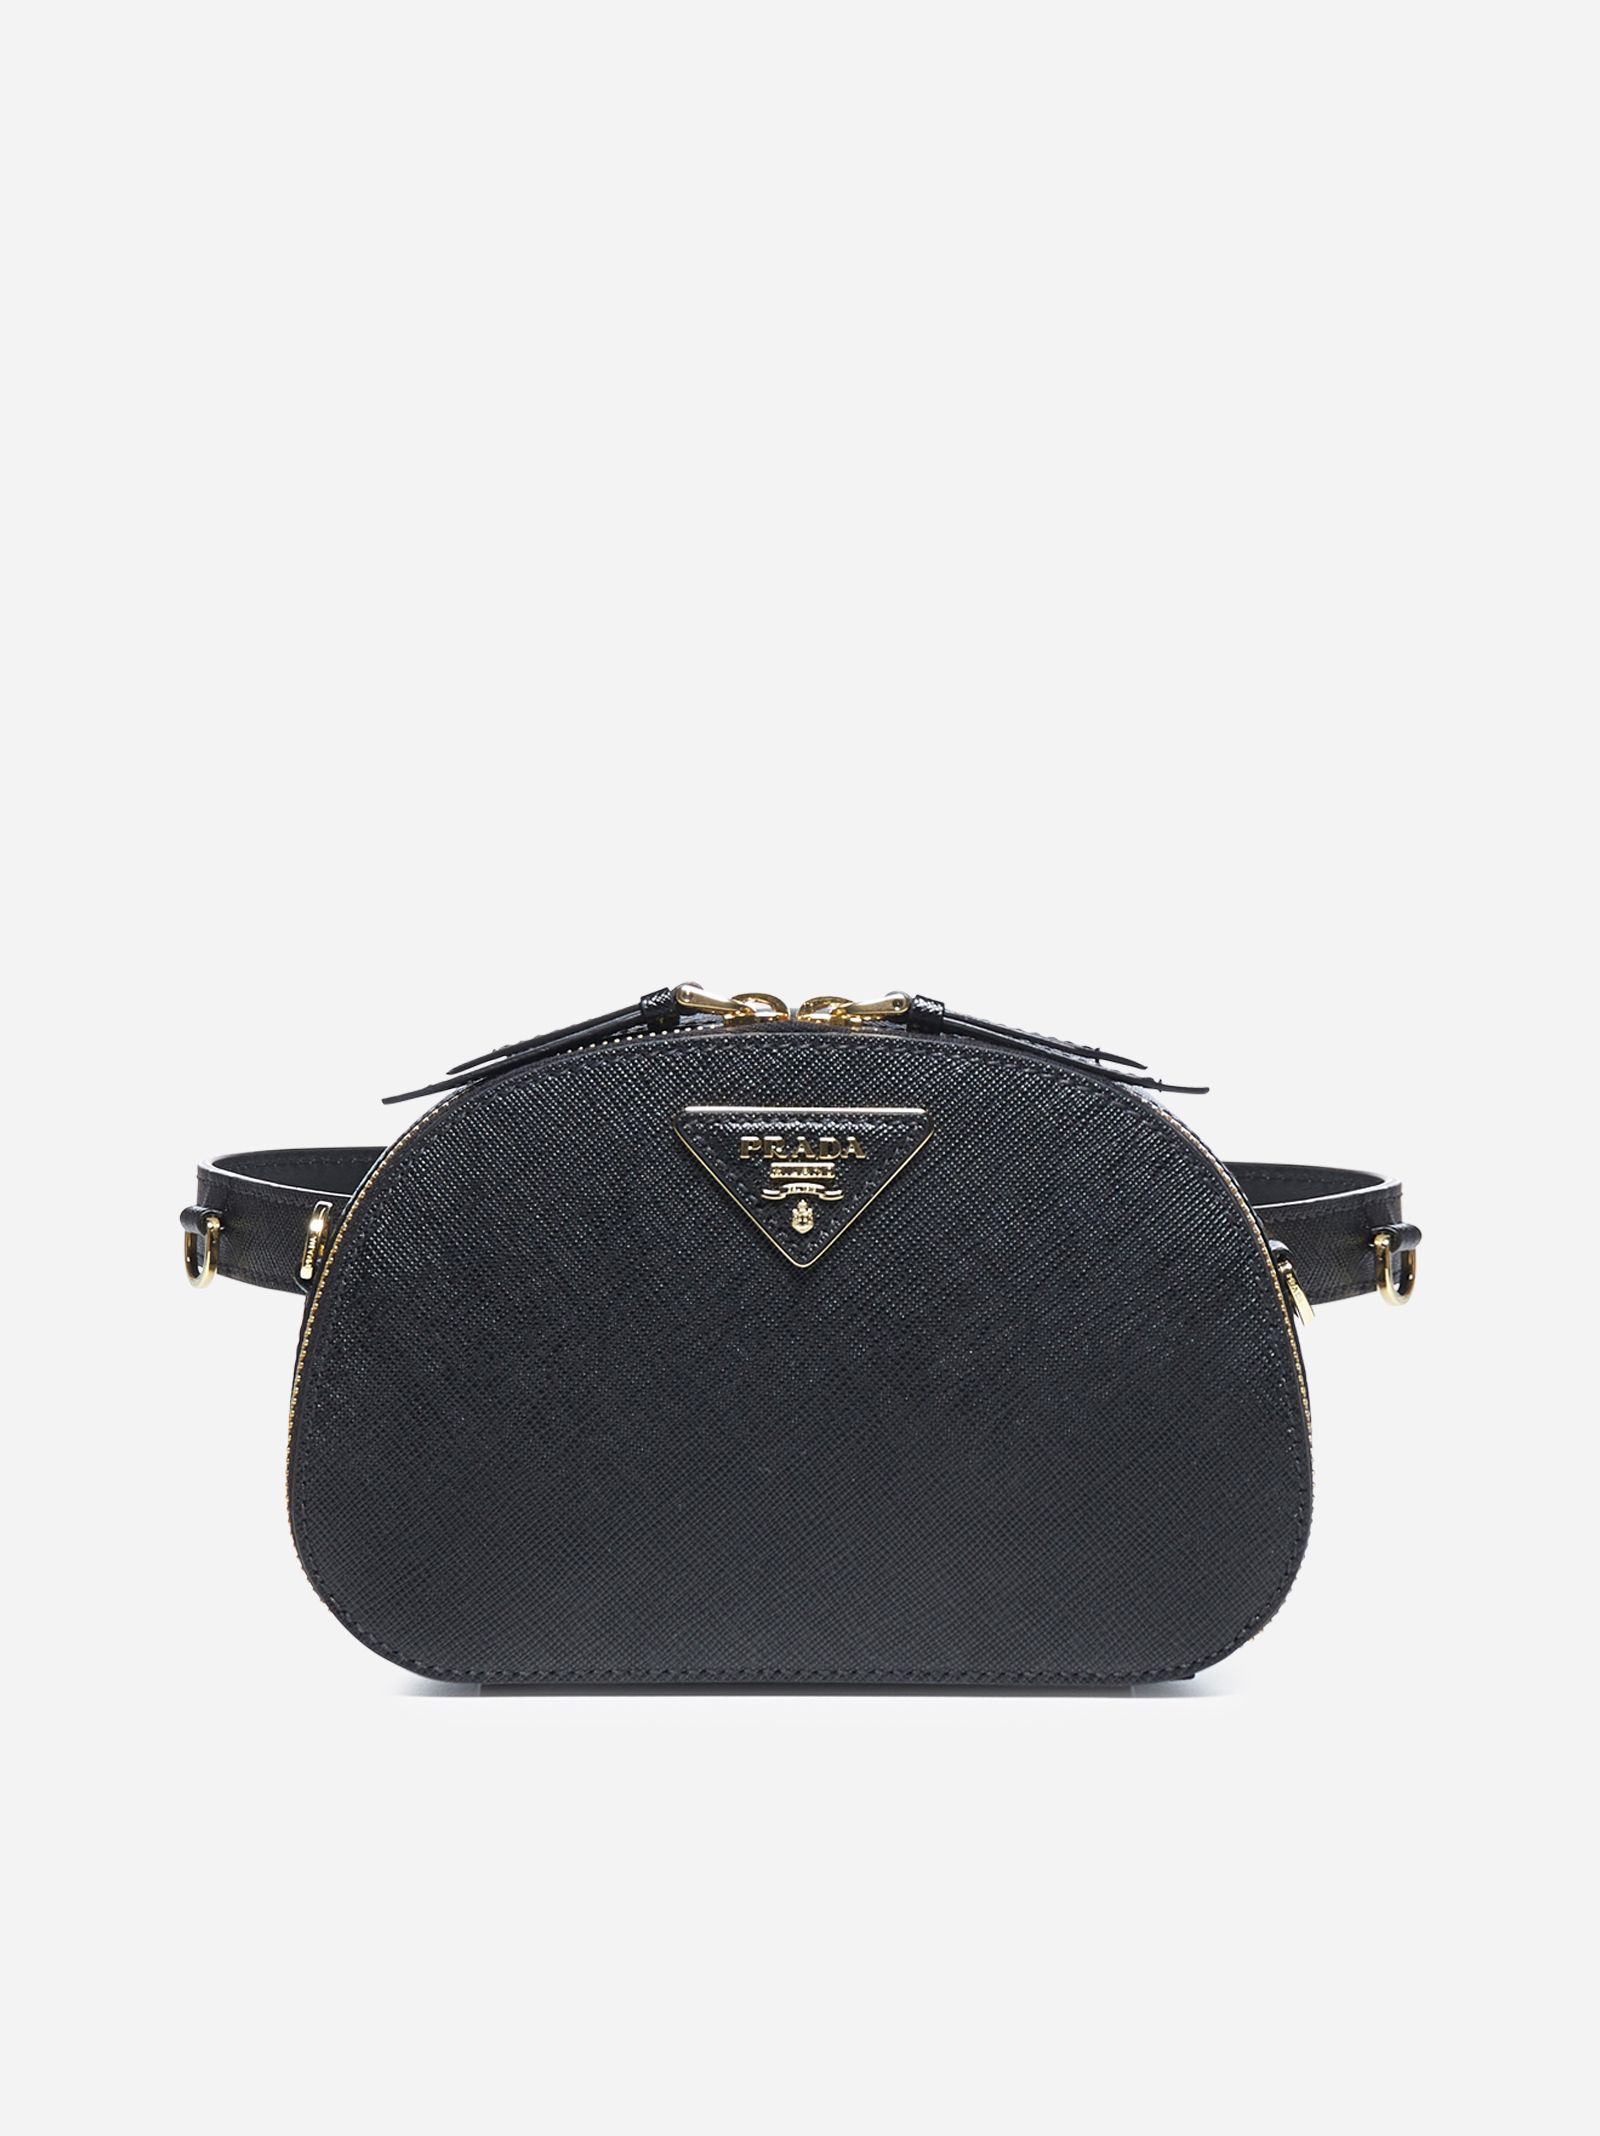 Odette Saffiano leather fanny pack